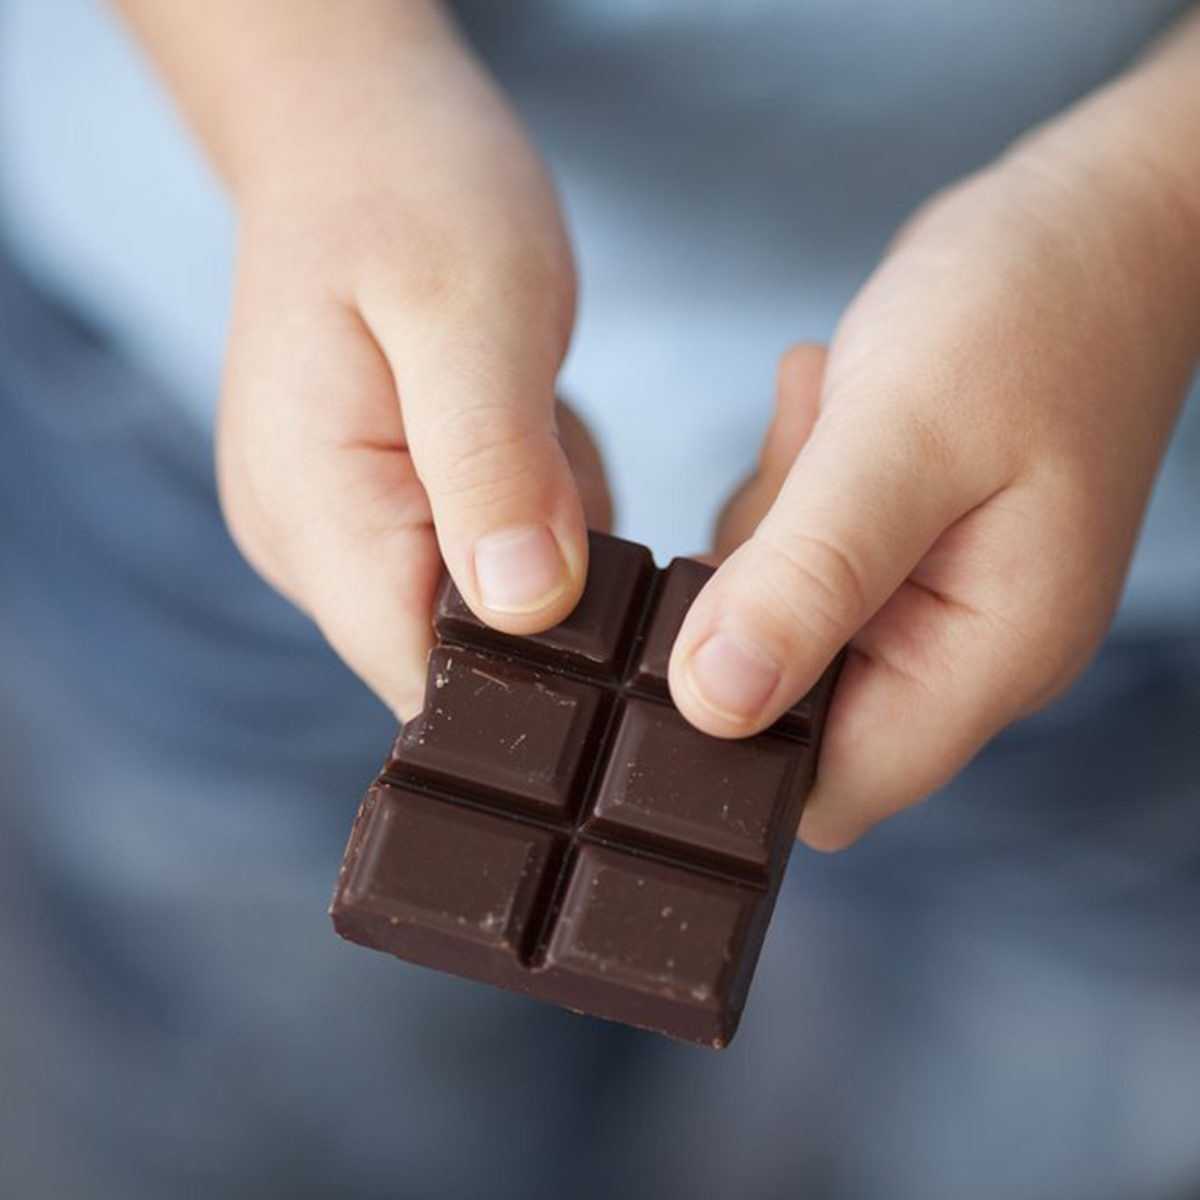 Child breaking off piece of chocolate bar